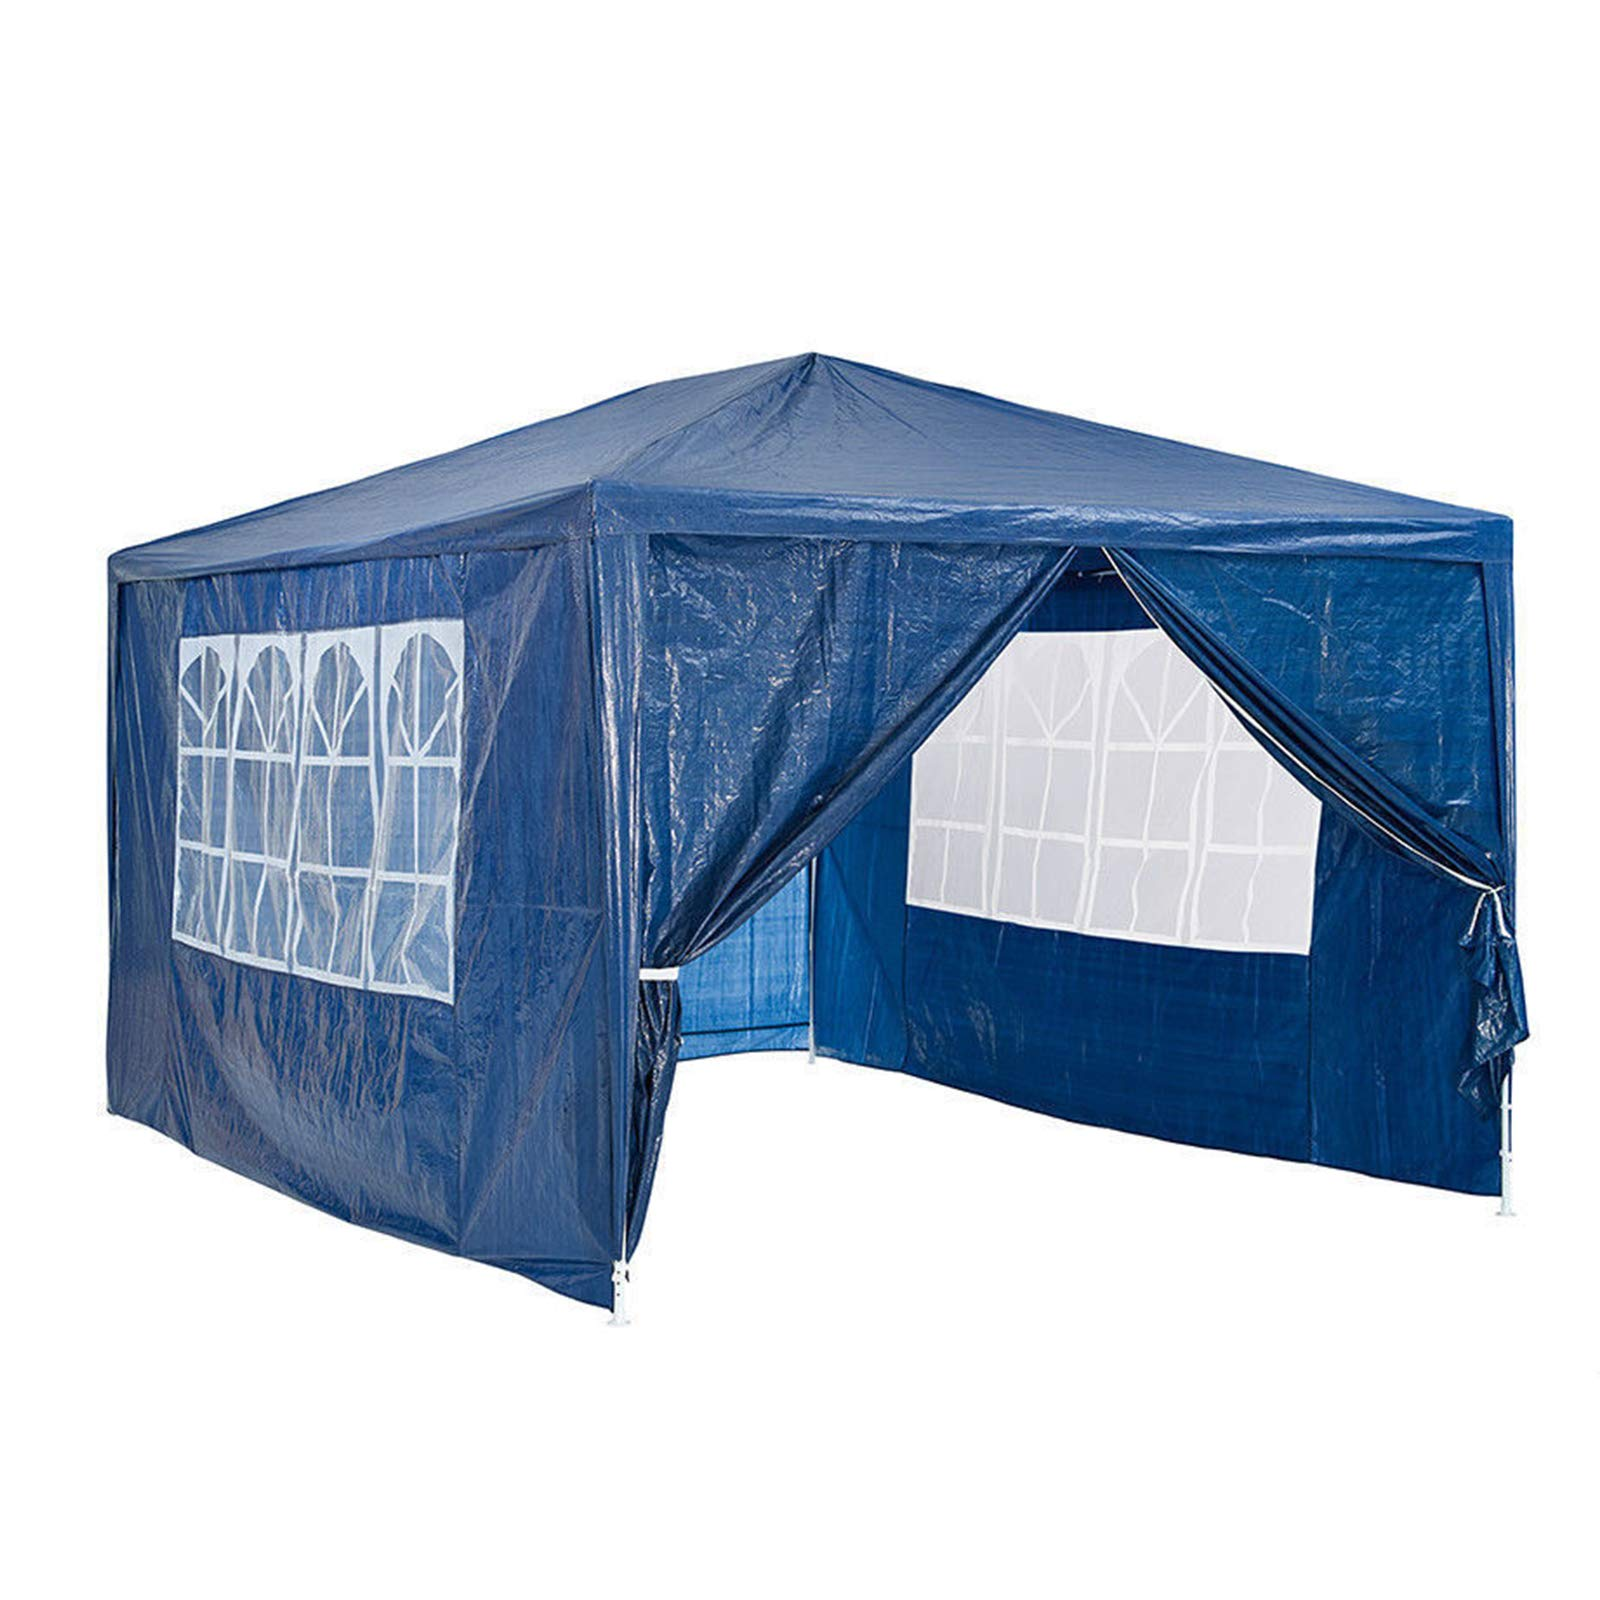 NEW Garden Heavy Duty 130g PE Gazebo Marquee Party Tent Canopy Outsides Garden Camping Beach Wedding Folding Gazebo Canopy Full Cover 4 Side Panels 3x3M Easy to Assemble Blue